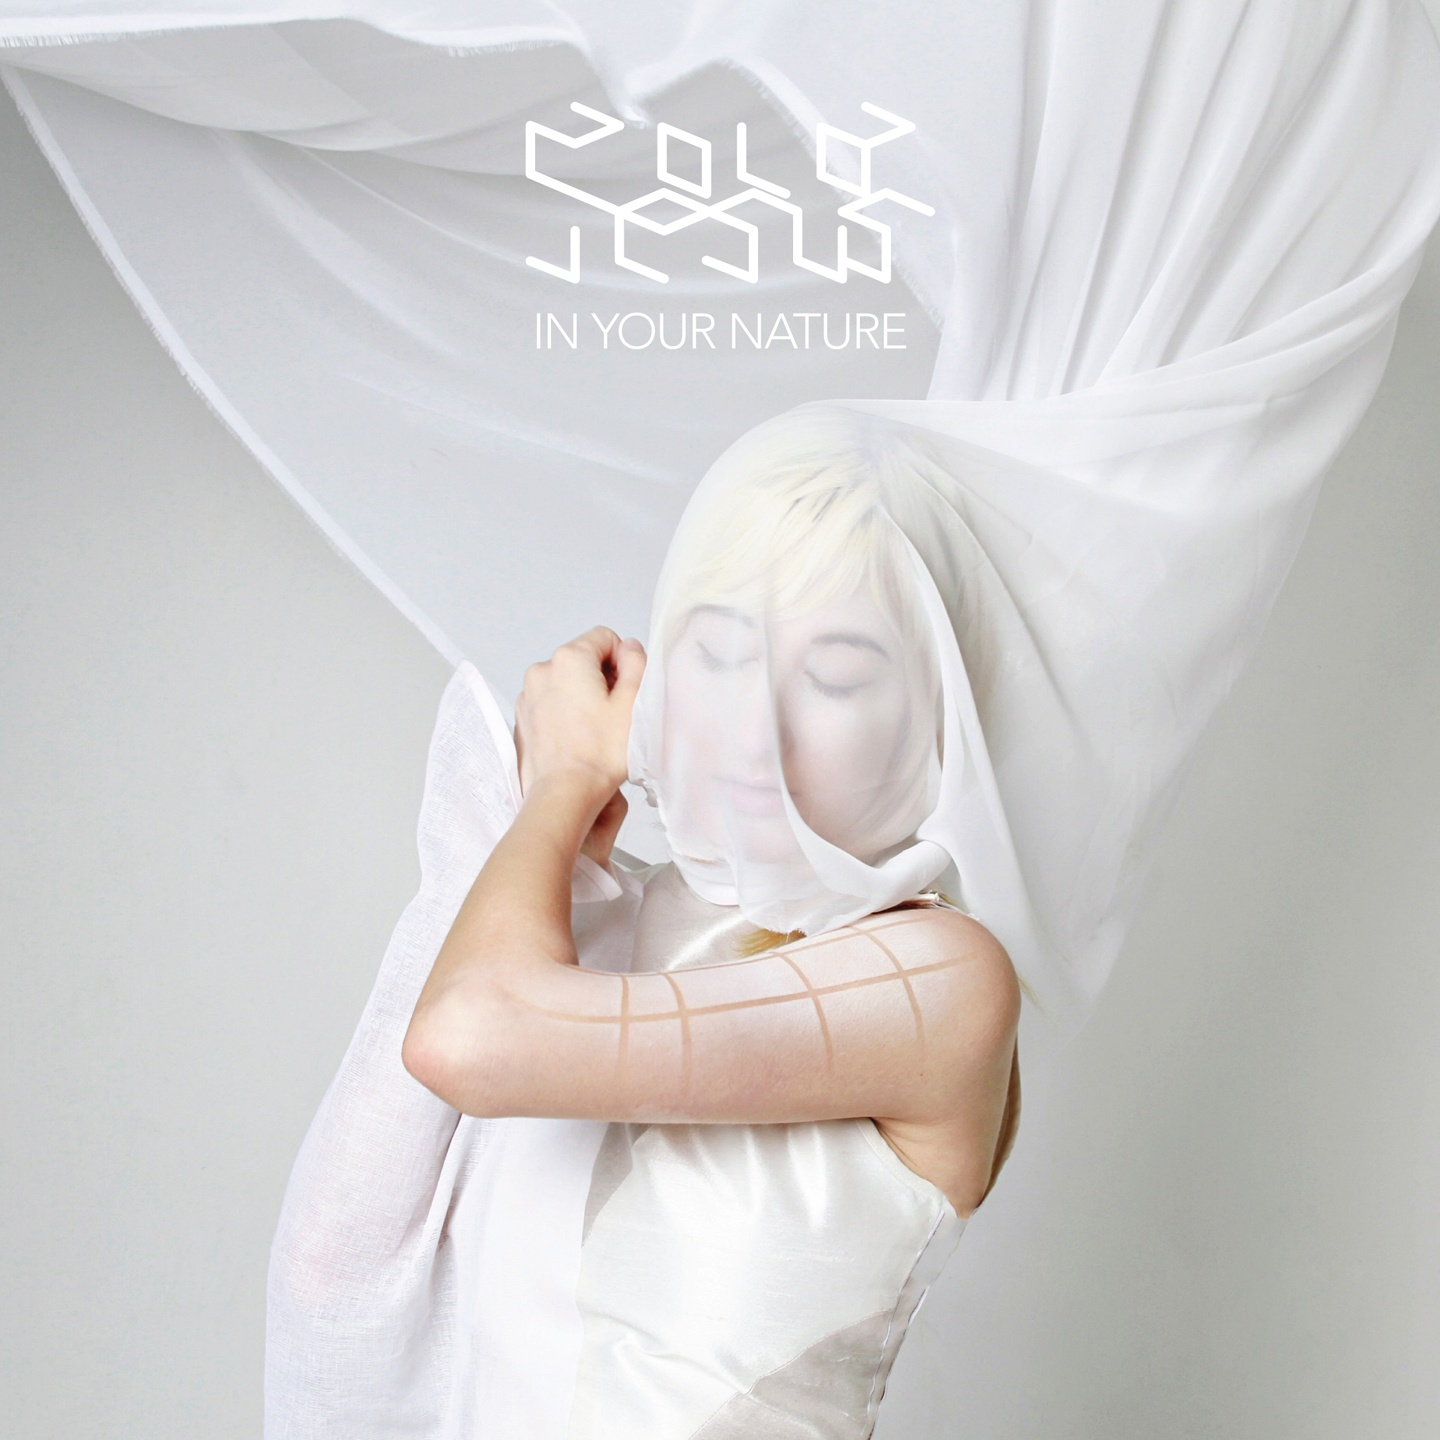 ZOLA JESUS, in your nature cover